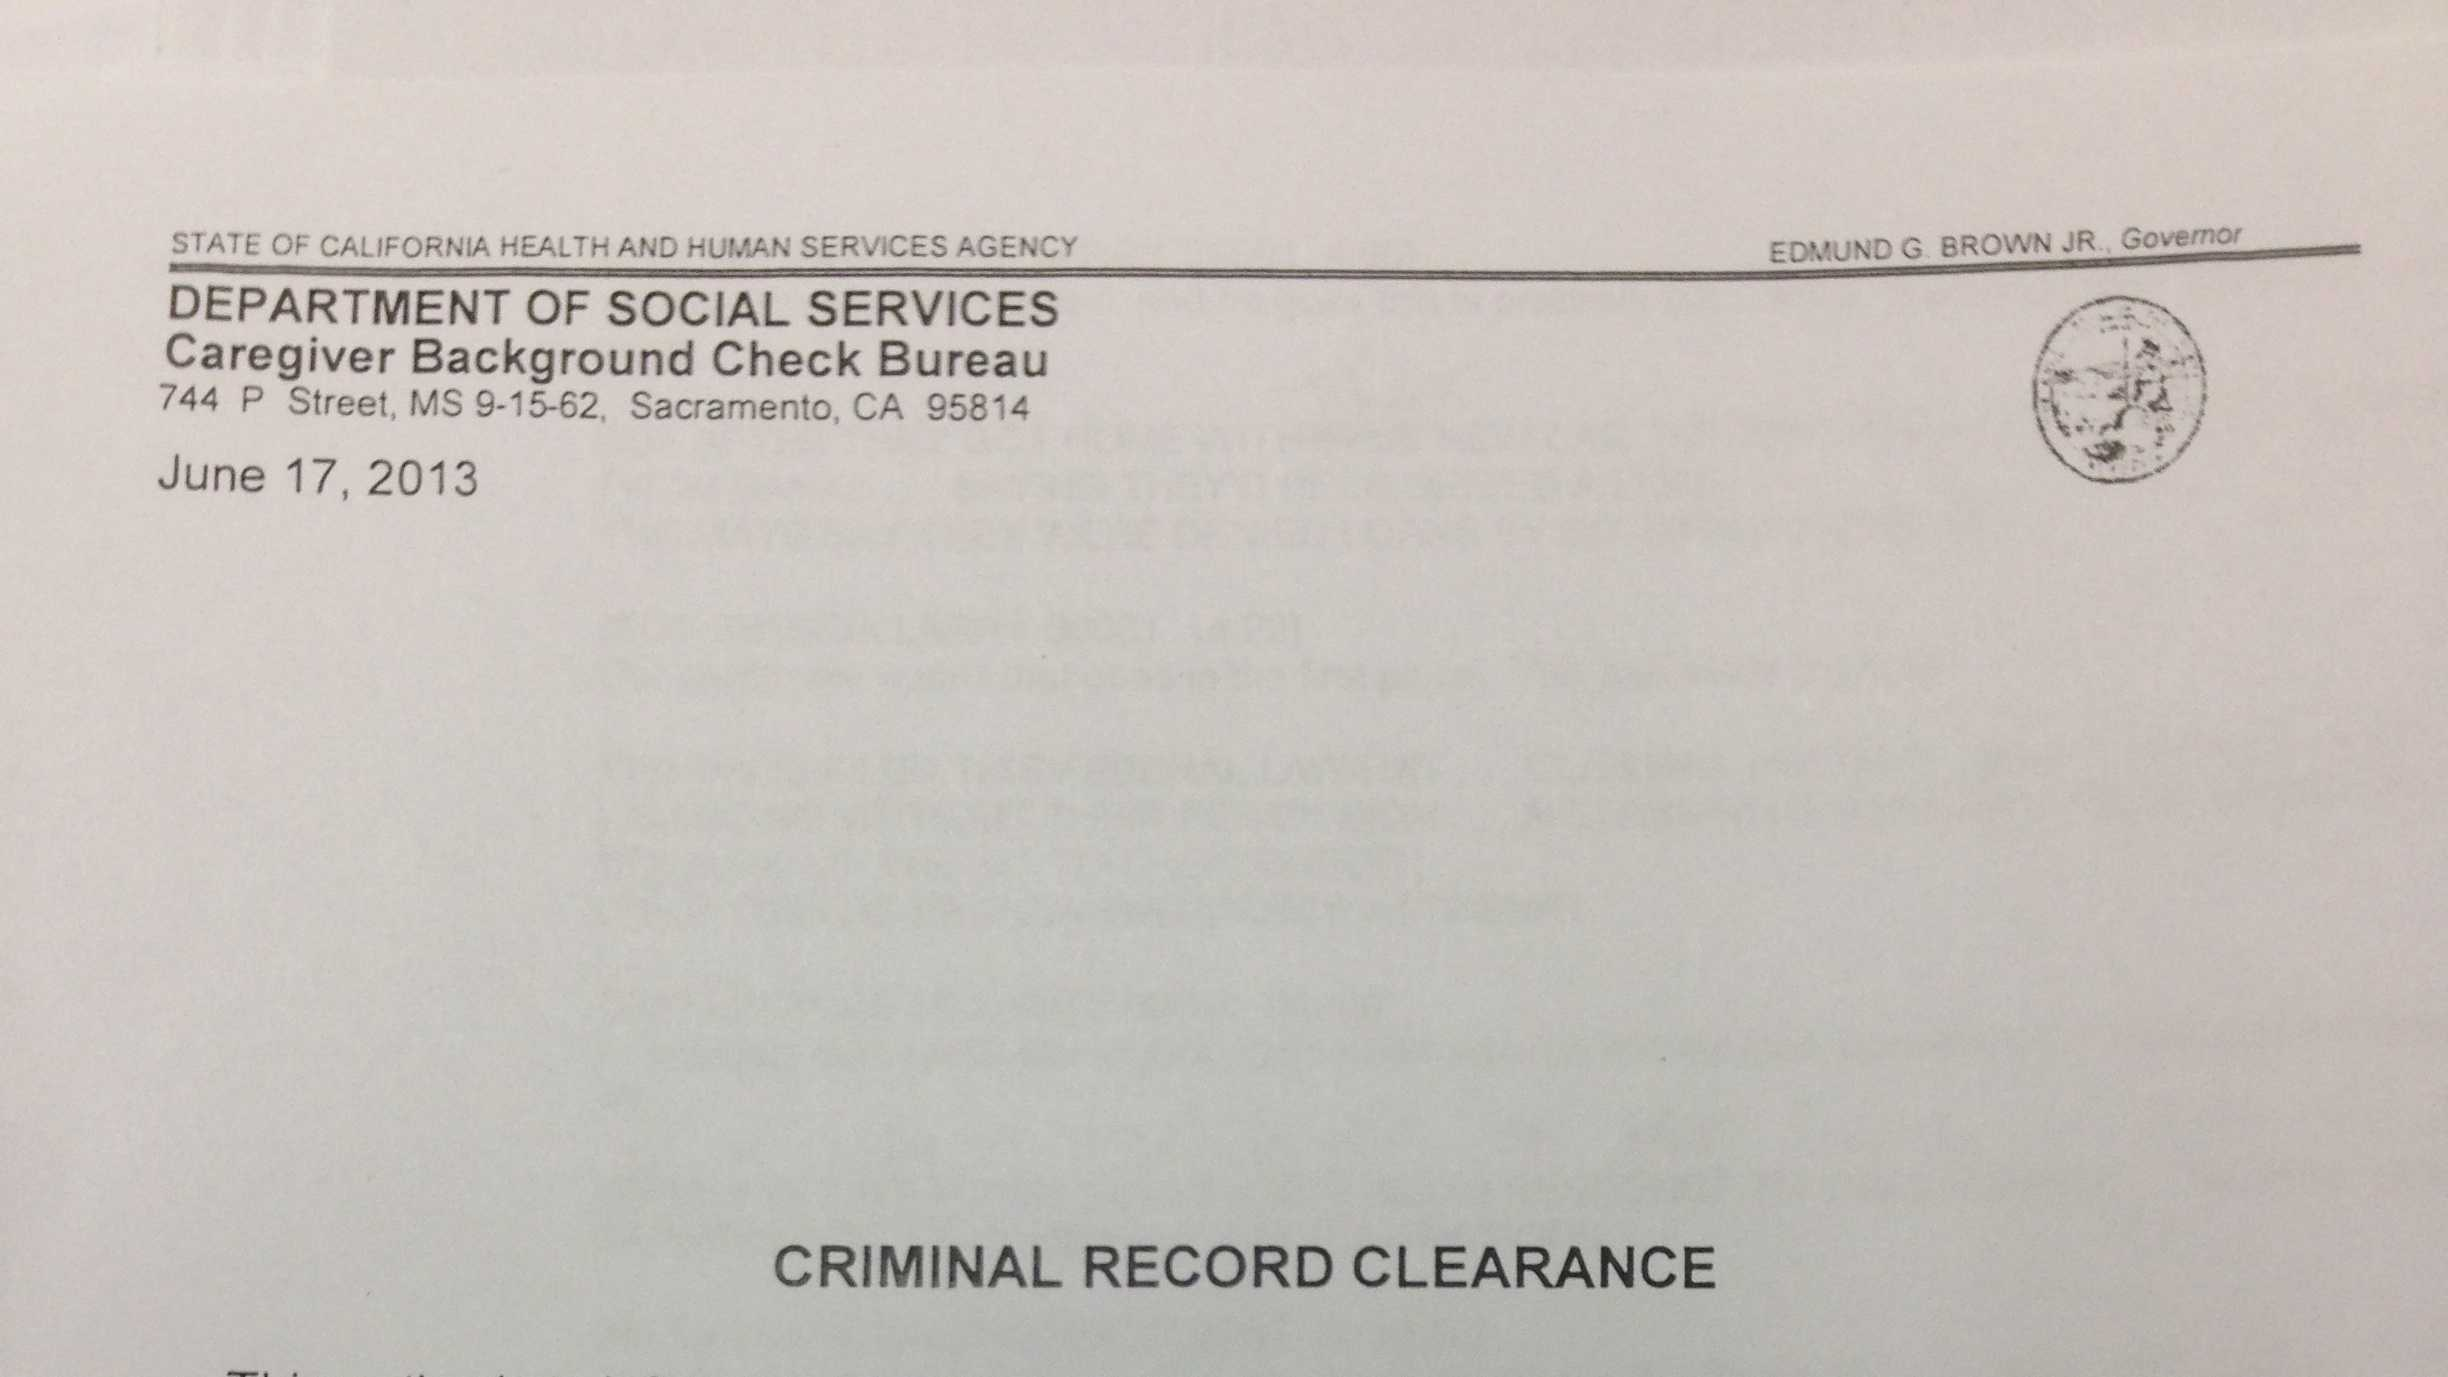 Social Services clearance letter